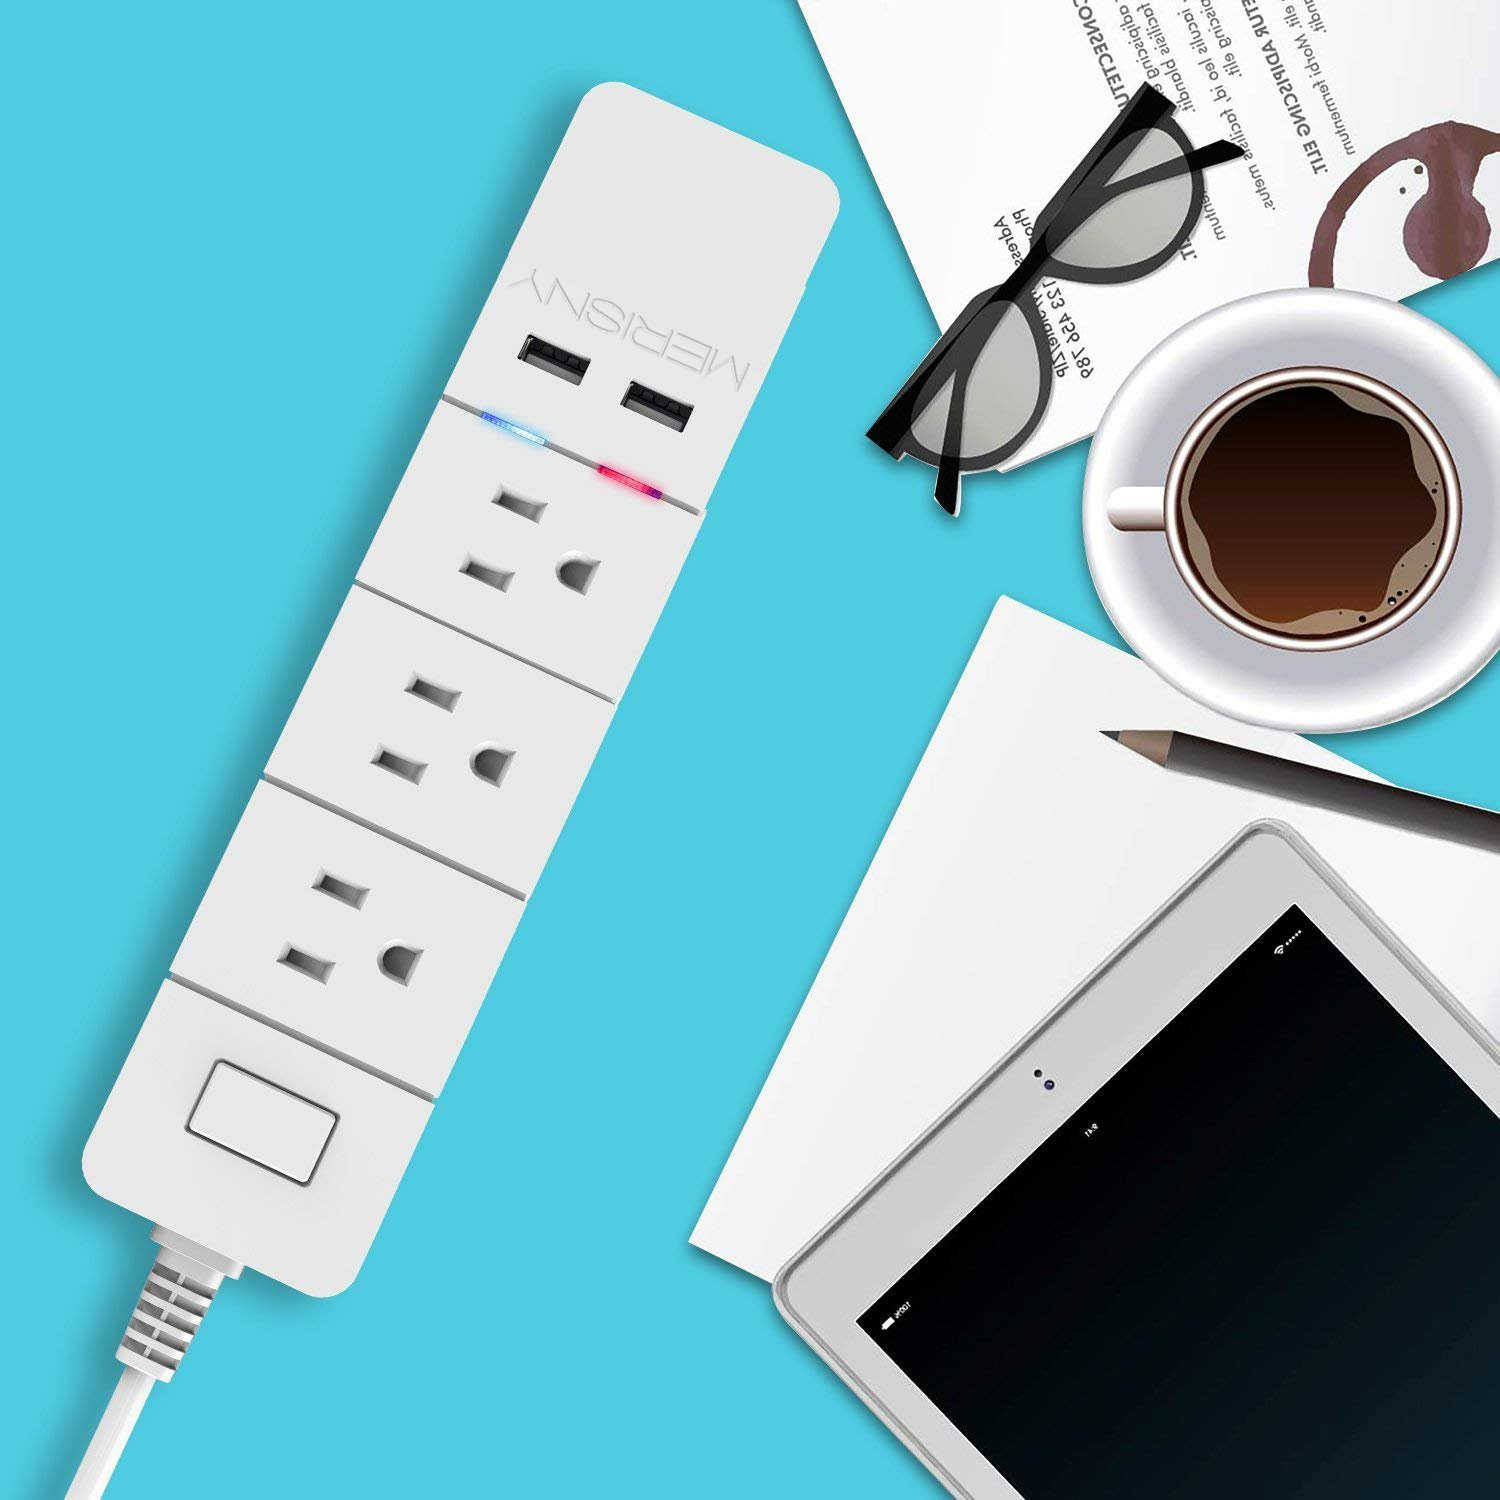 Merisny WiFi Power Strip Smart Surge Protector with Individual Control - Works with Alexa Google Home - Smart Surge Protector with USB - Remote Control by Smart Phone by Merisny (Image #6)